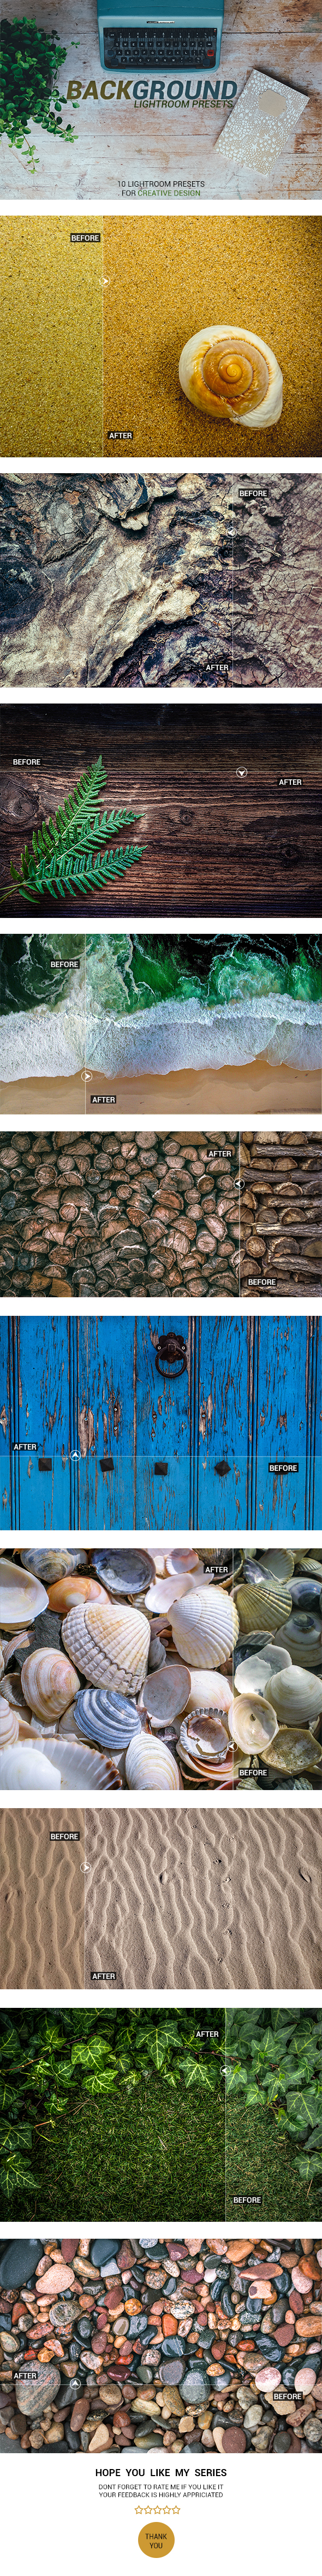 Background Lightroom Presets - Lightroom Presets Add-ons